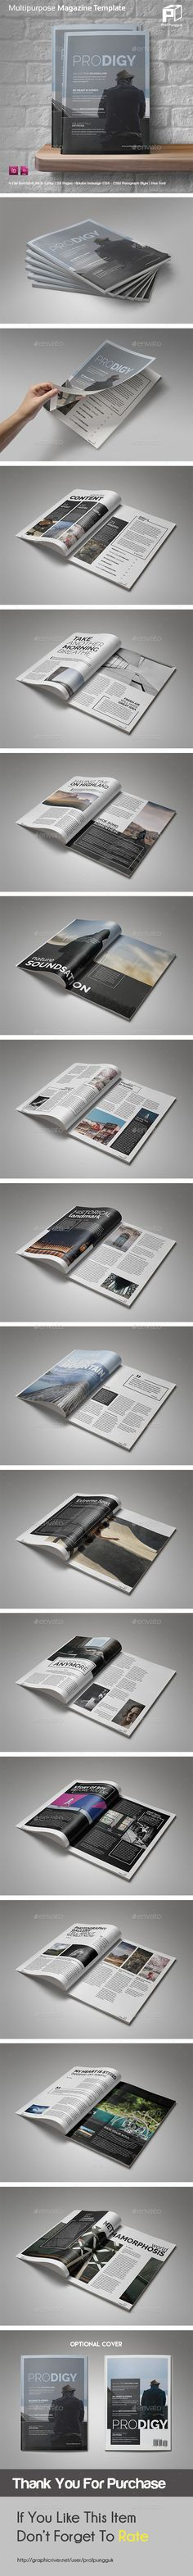 Multipurpose Magazine Template InDesign INDD. Download here: https://graphicriver.net/item/multipurpose-magazine-vol4/17416439?ref=ksioks